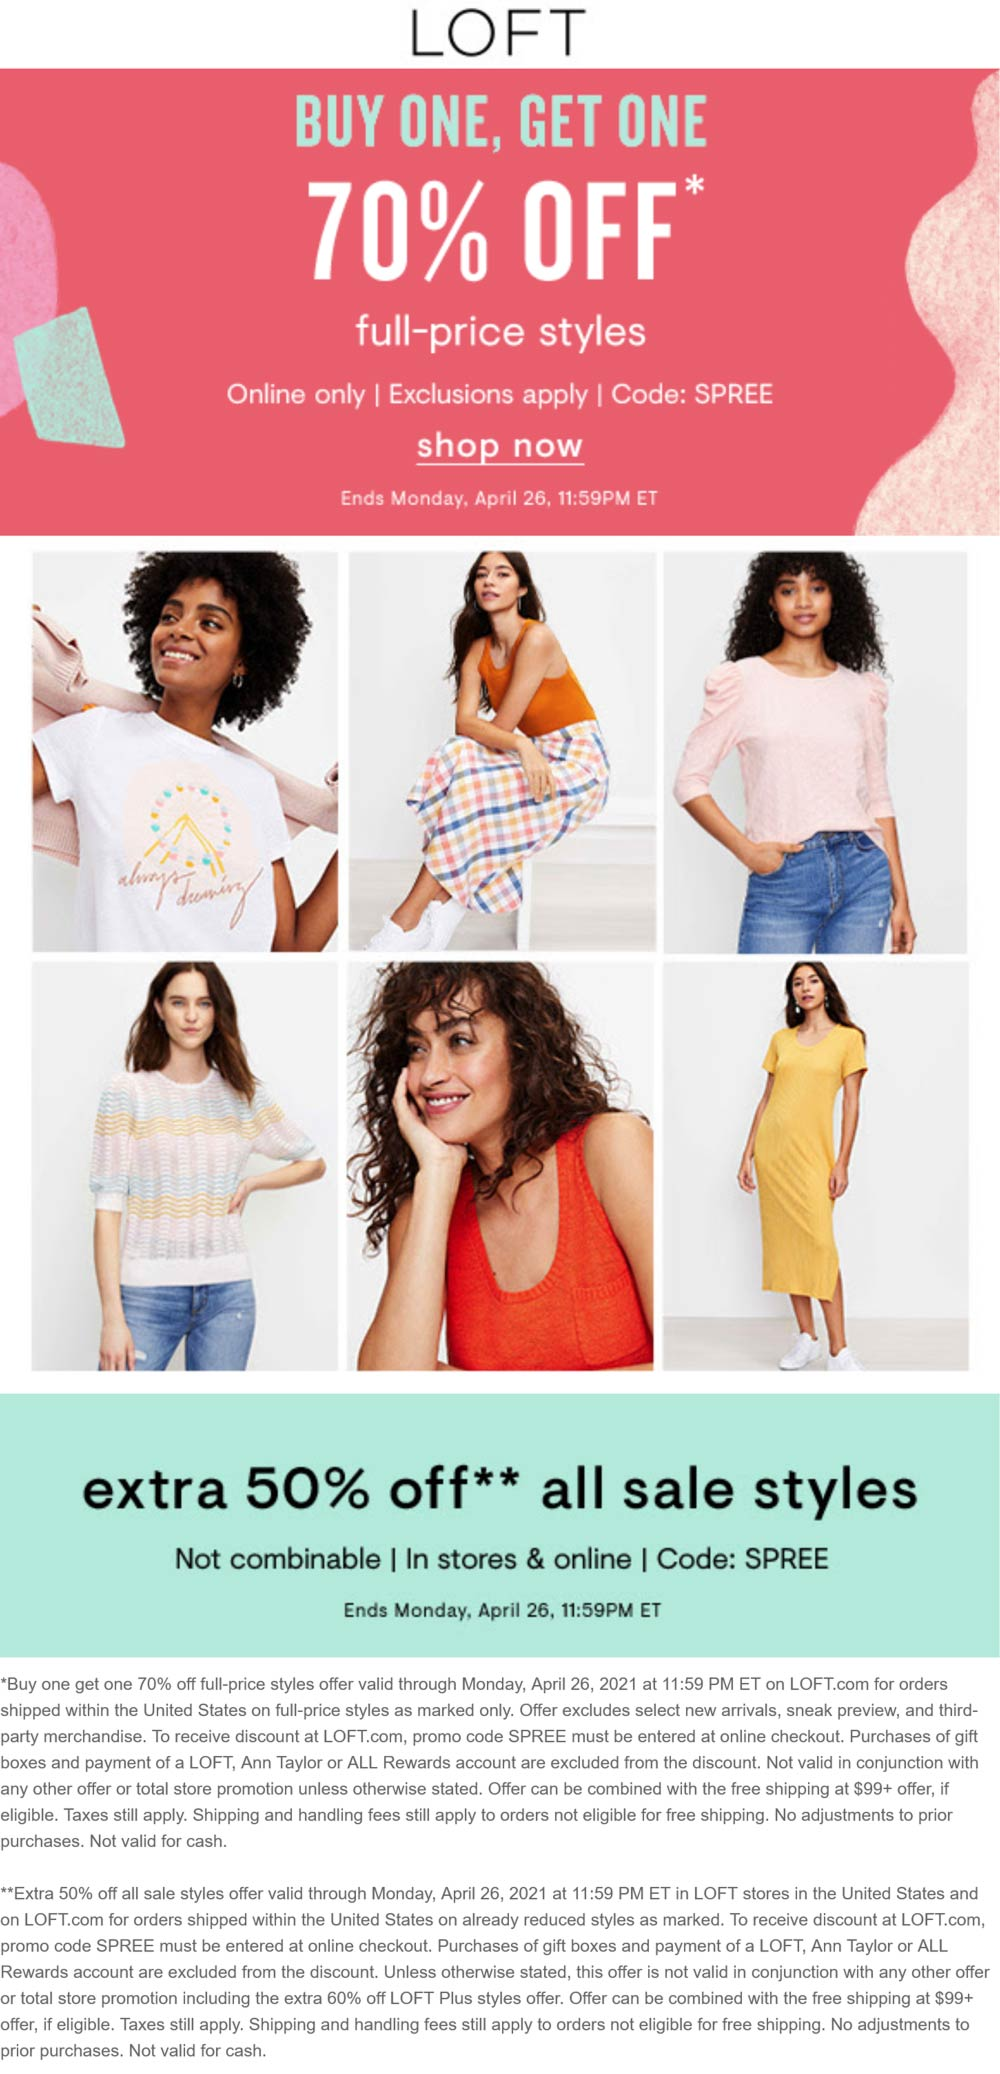 LOFT stores Coupon  Extra 50% off sale styles today at LOFT, also online + second item 70% off via promo code SPREE #loft